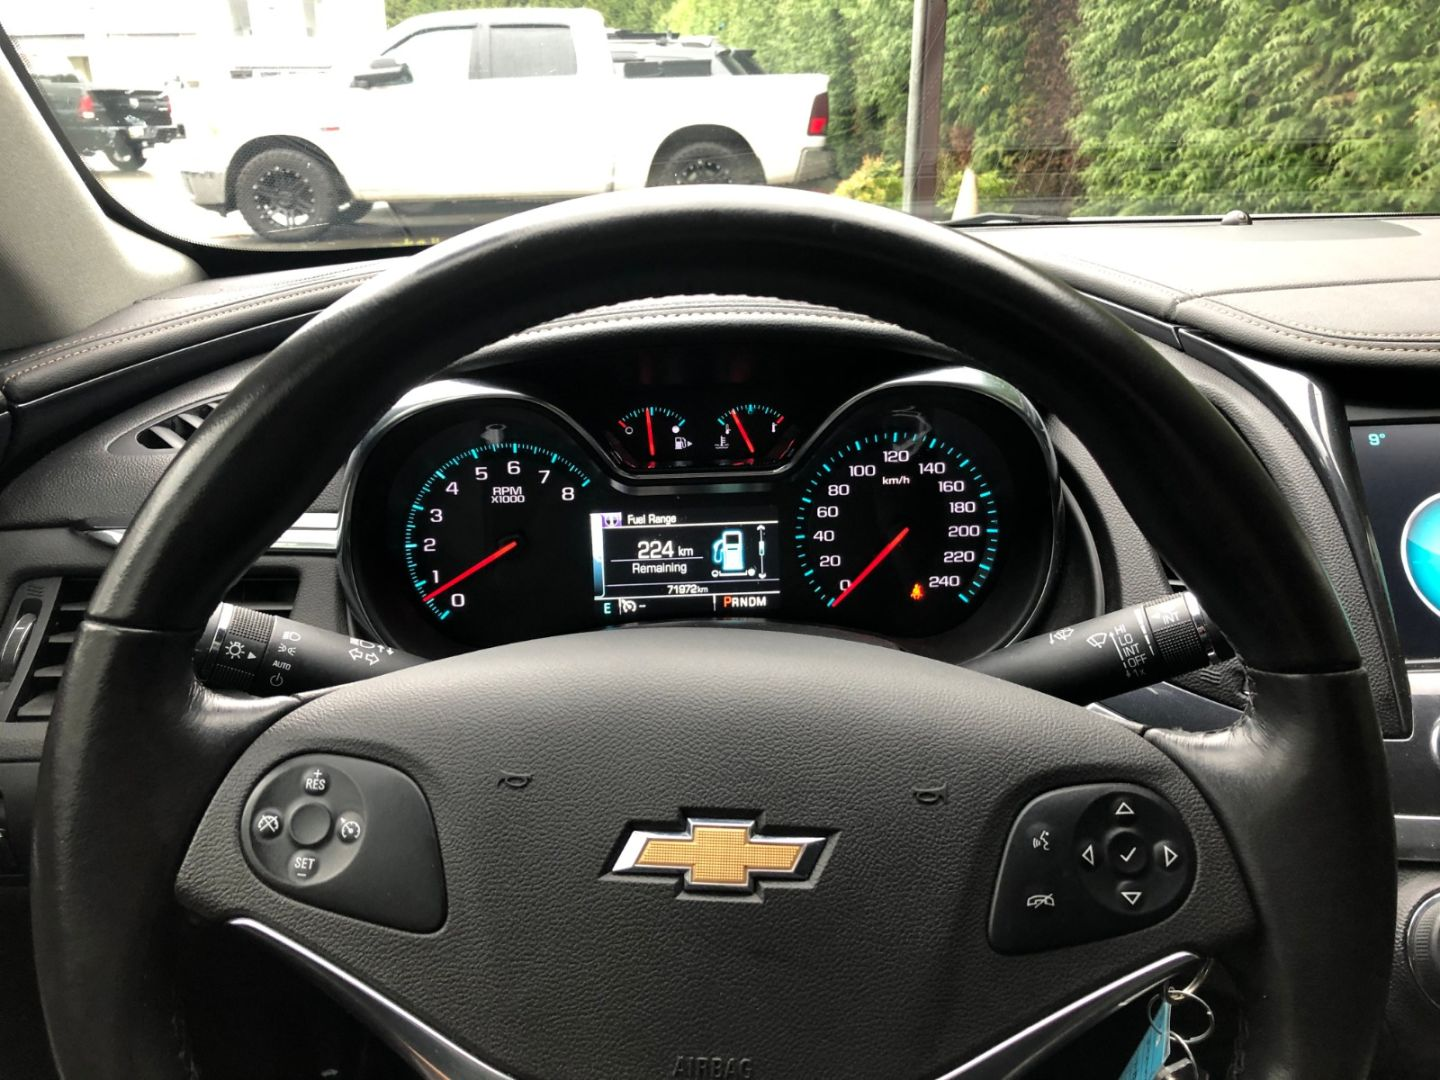 2016 Chevrolet Impala LT for sale in Surrey, British Columbia